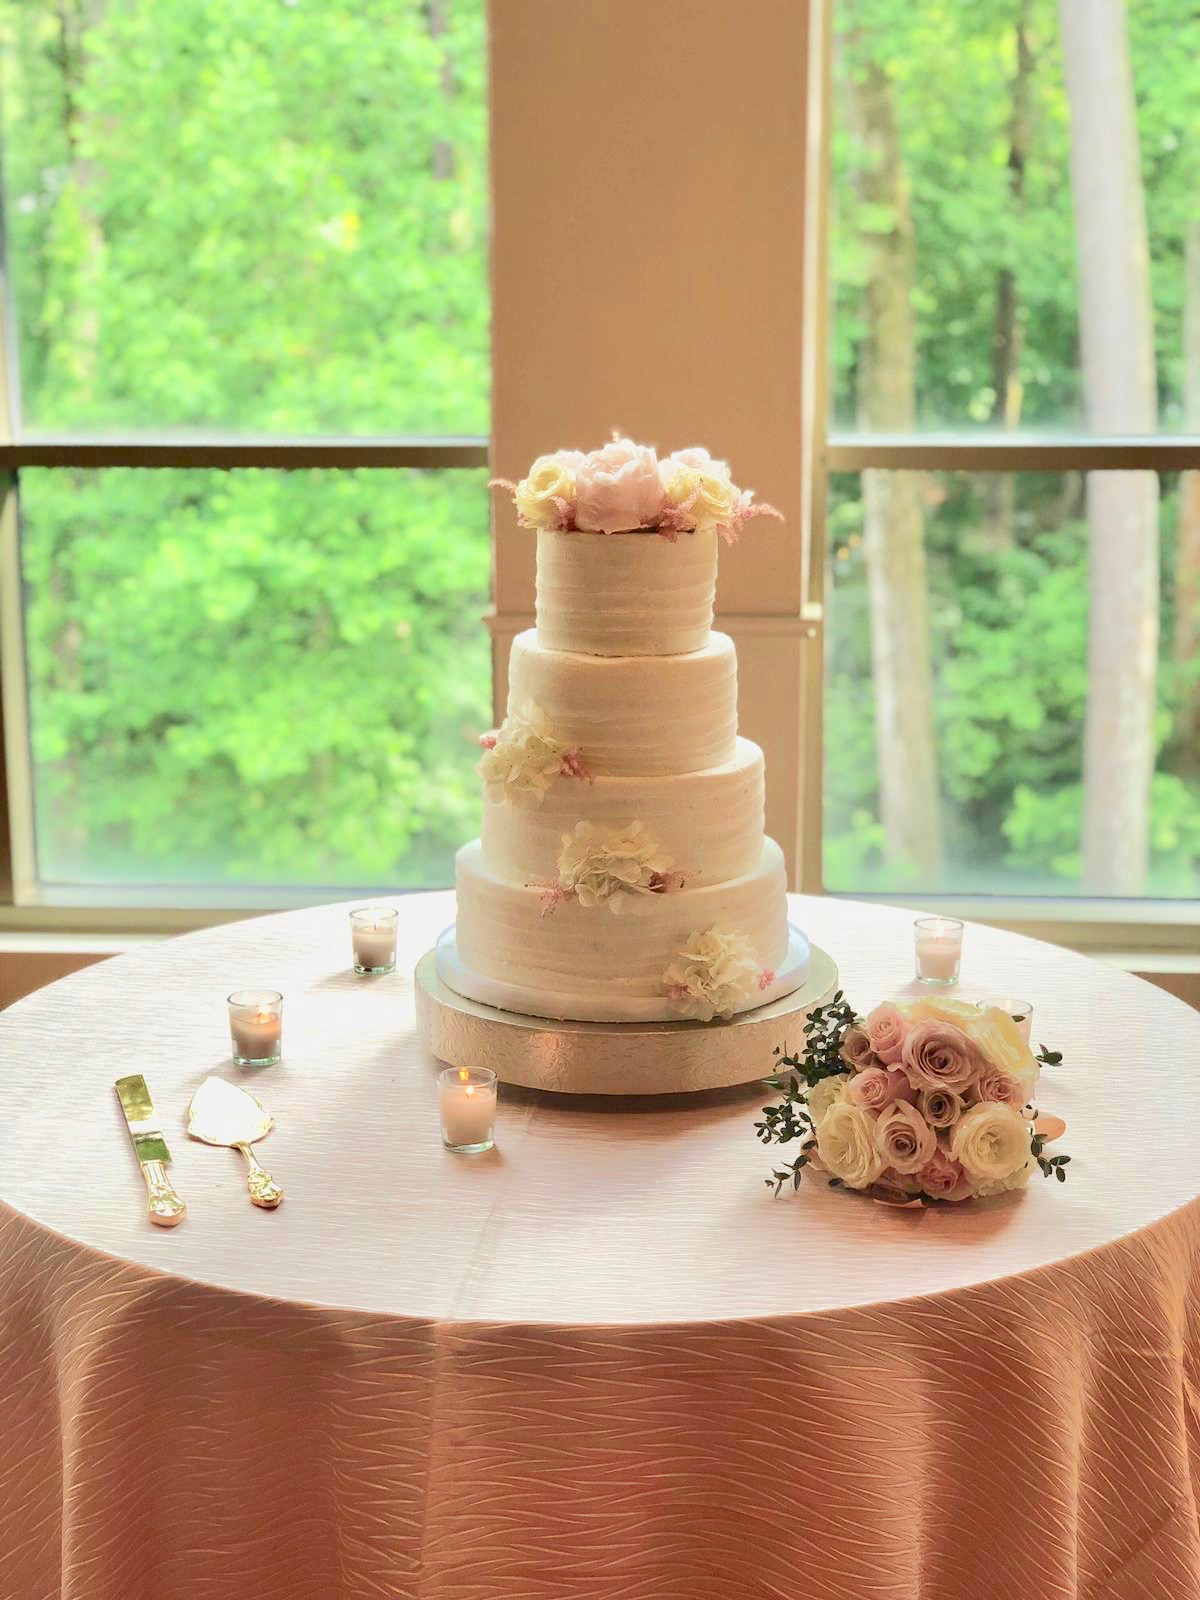 Reception Venue:  The Atlanta History Center  Cake by  Confection Perfection  Flowers by  On Occasions of Atlanta  Linens by  BBJ Linens